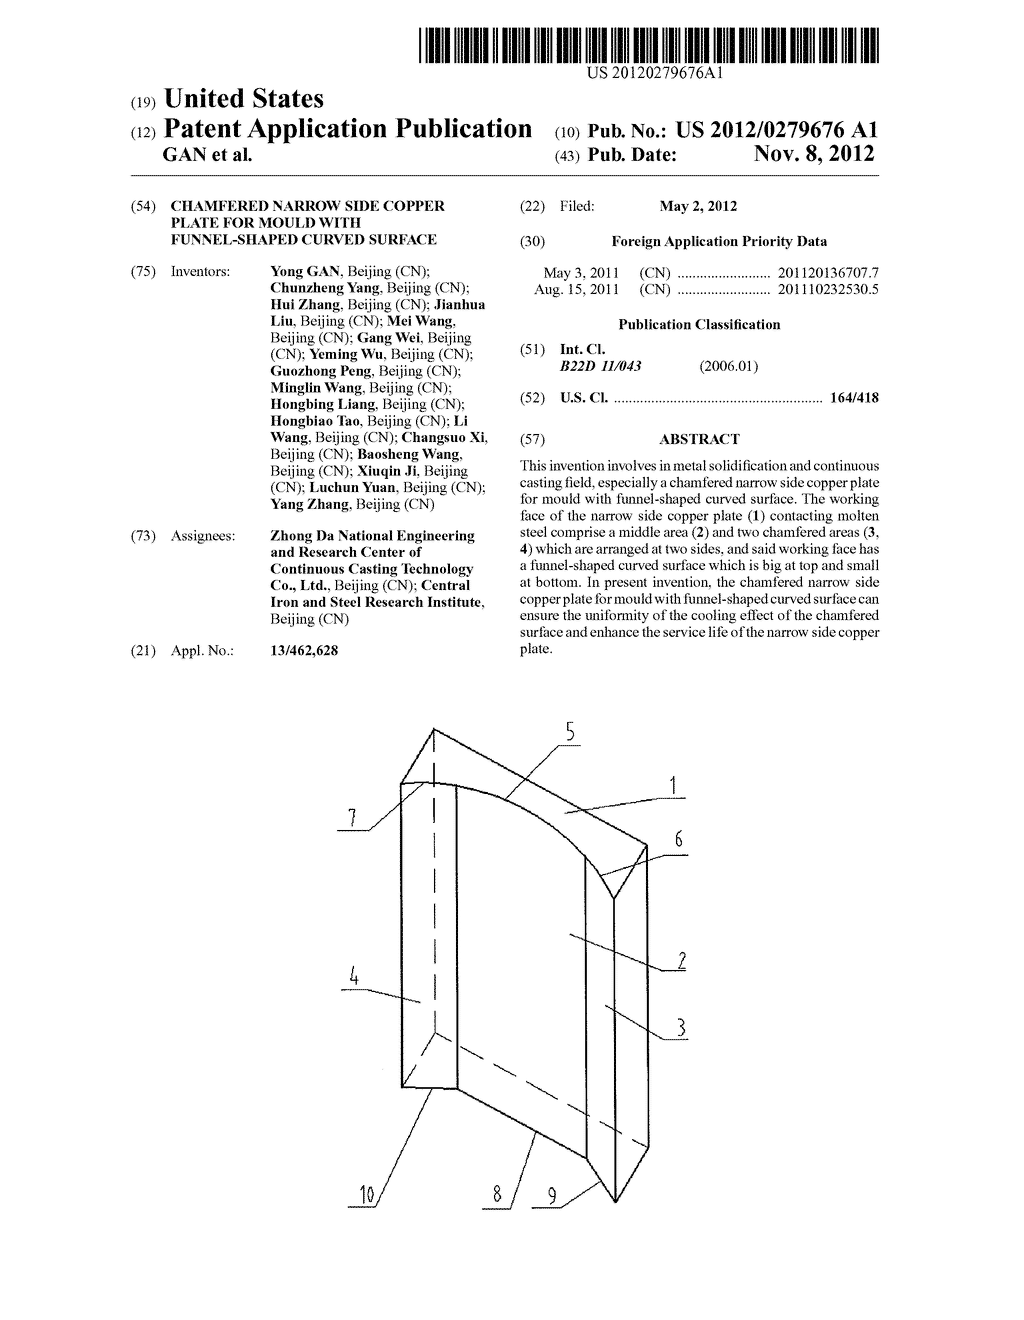 CHAMFERED NARROW SIDE COPPER PLATE FOR MOULD WITH FUNNEL-SHAPED CURVED     SURFACE - diagram, schematic, and image 01